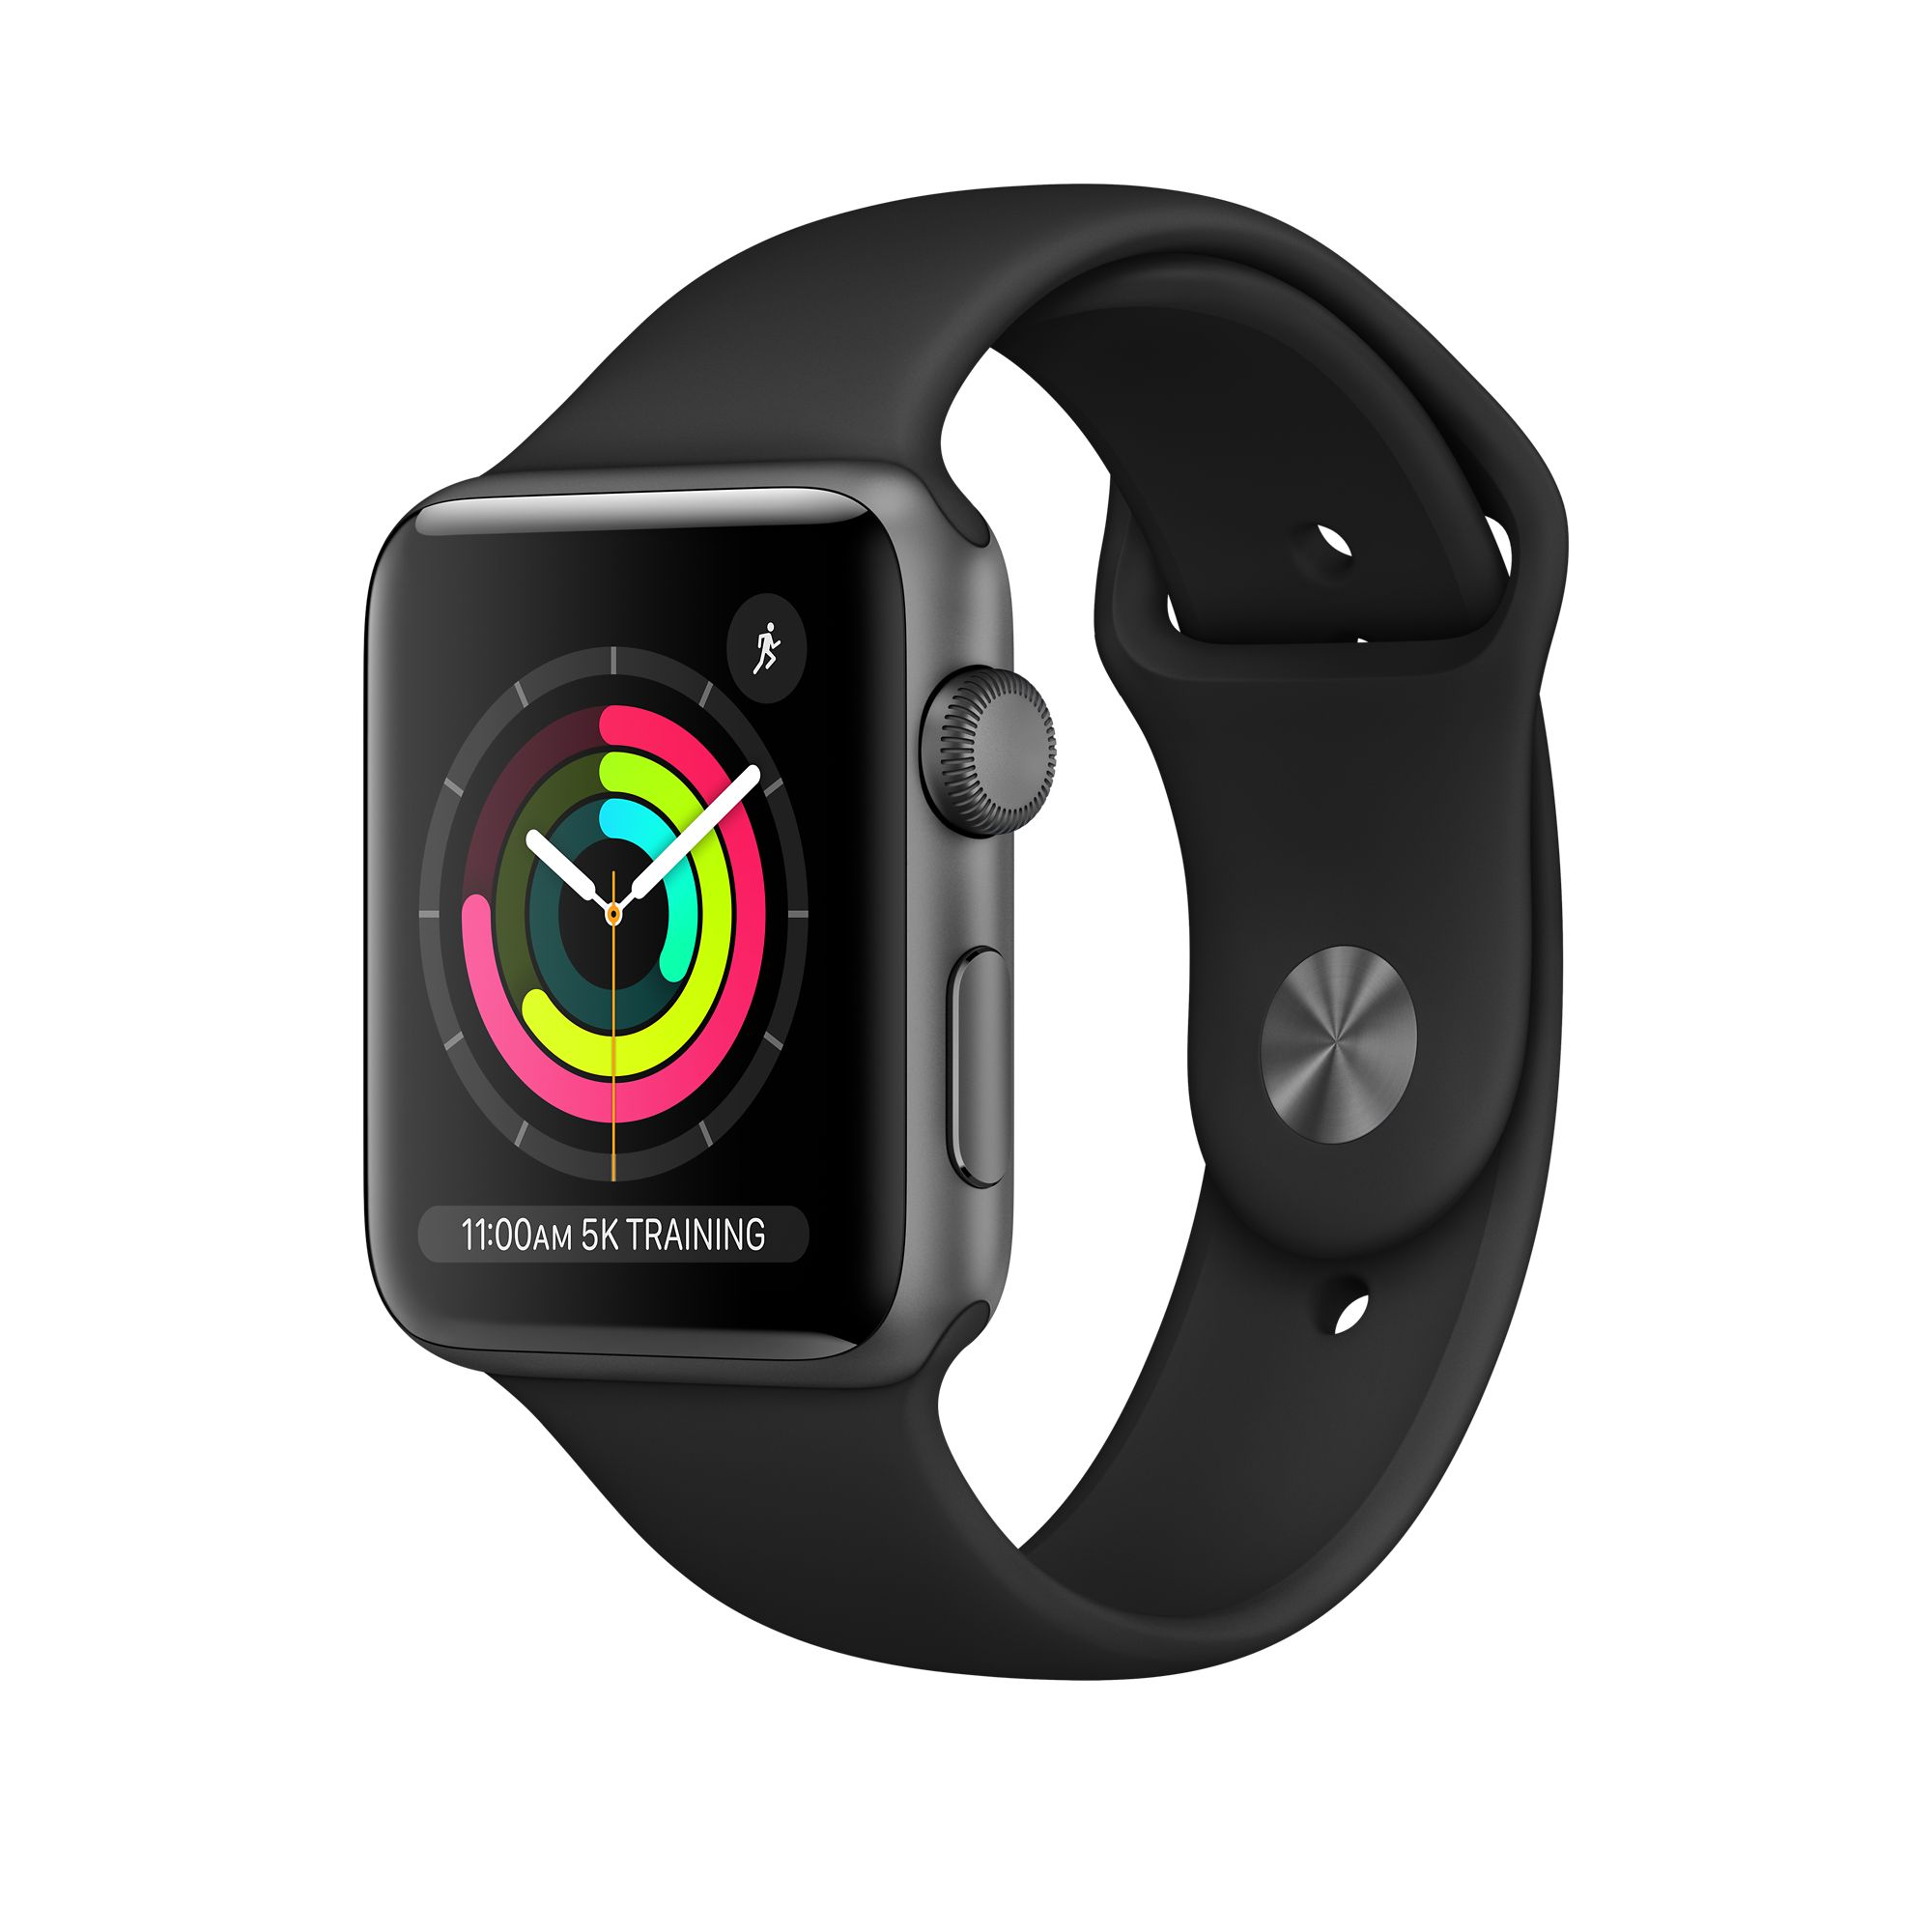 Apple Watch Series 3 Gps 42mm Space Gray Aluminum Case With Black Sport Band Apple